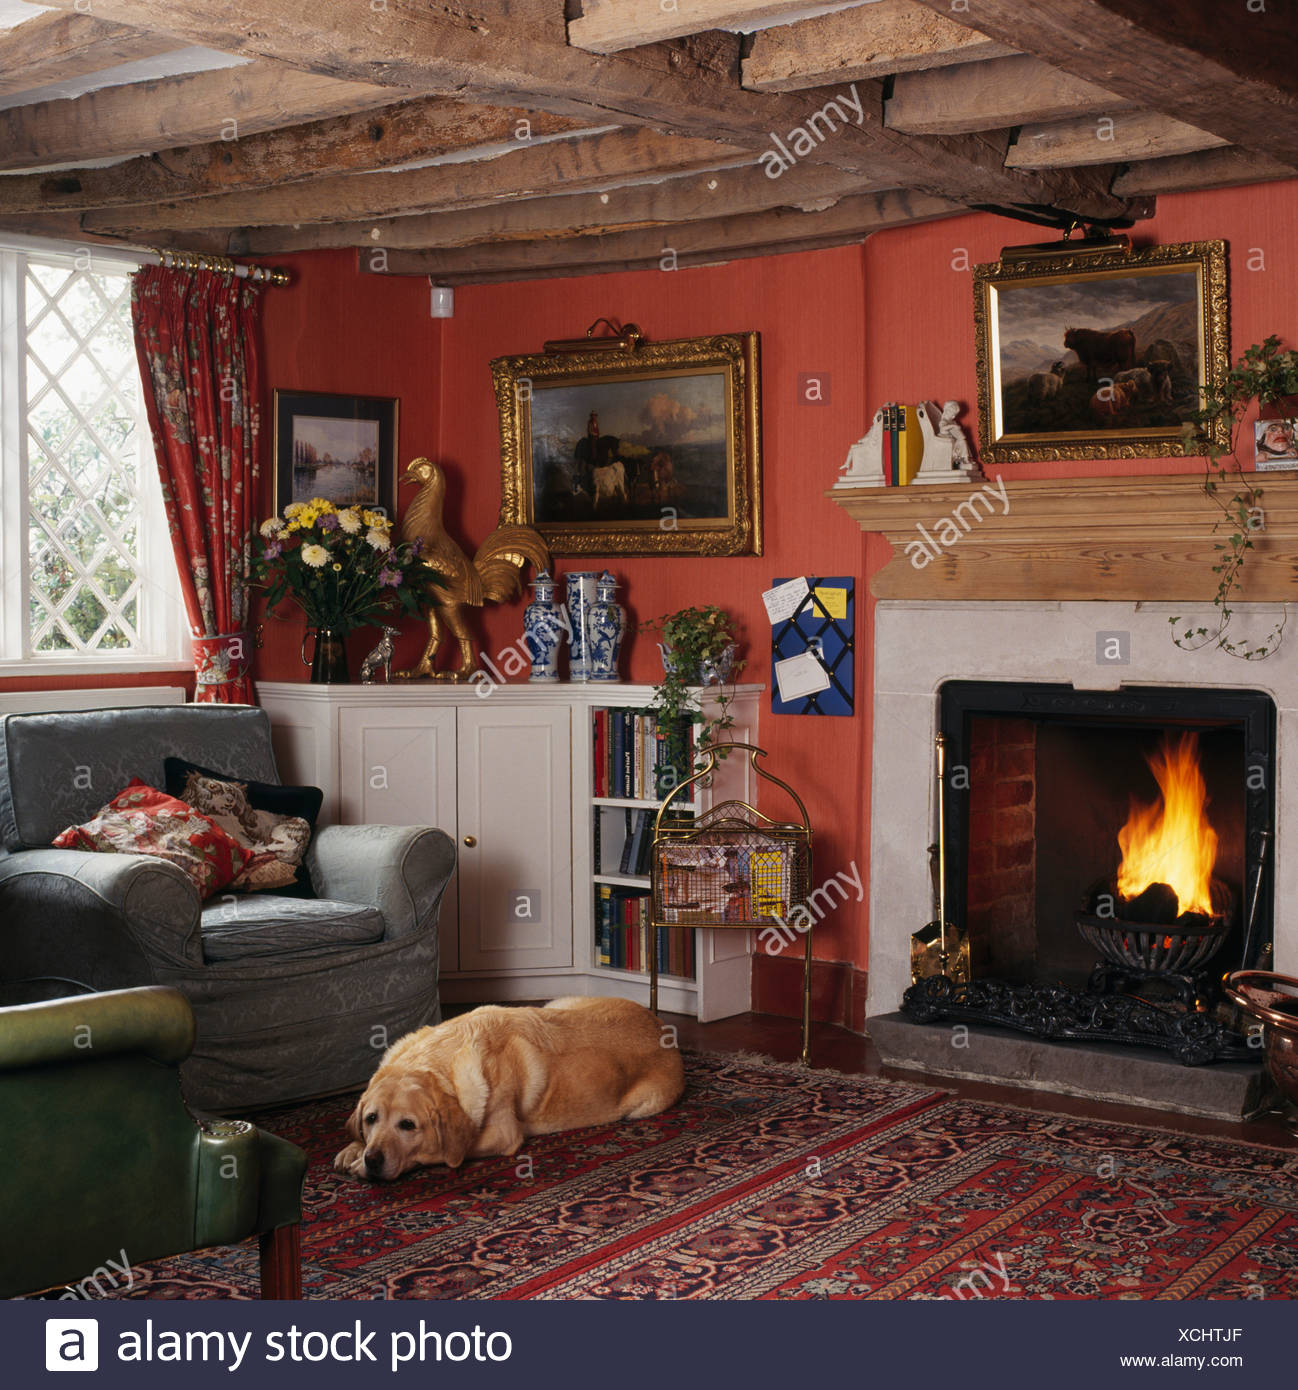 Dog And Fire And Interior Stock Photos & Dog And Fire And Interior ...